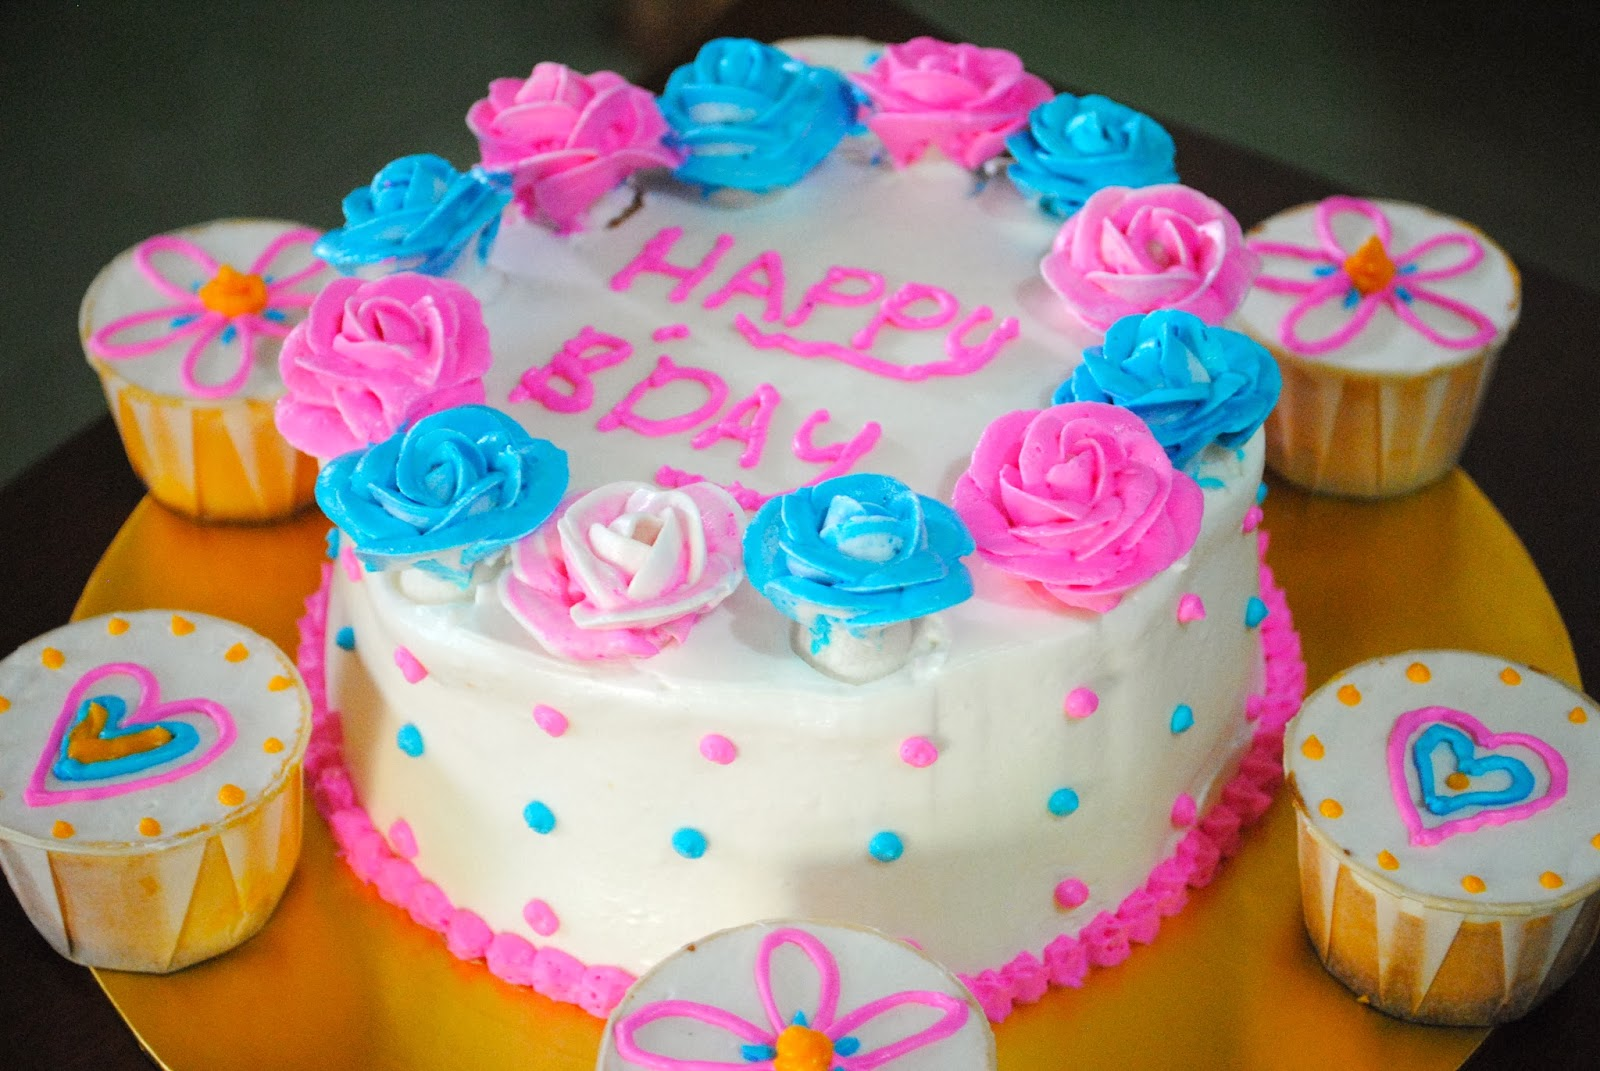 Fuchsia Royale: Blue And Pink Themed Birthday Cake - 1600x1071 - jpeg